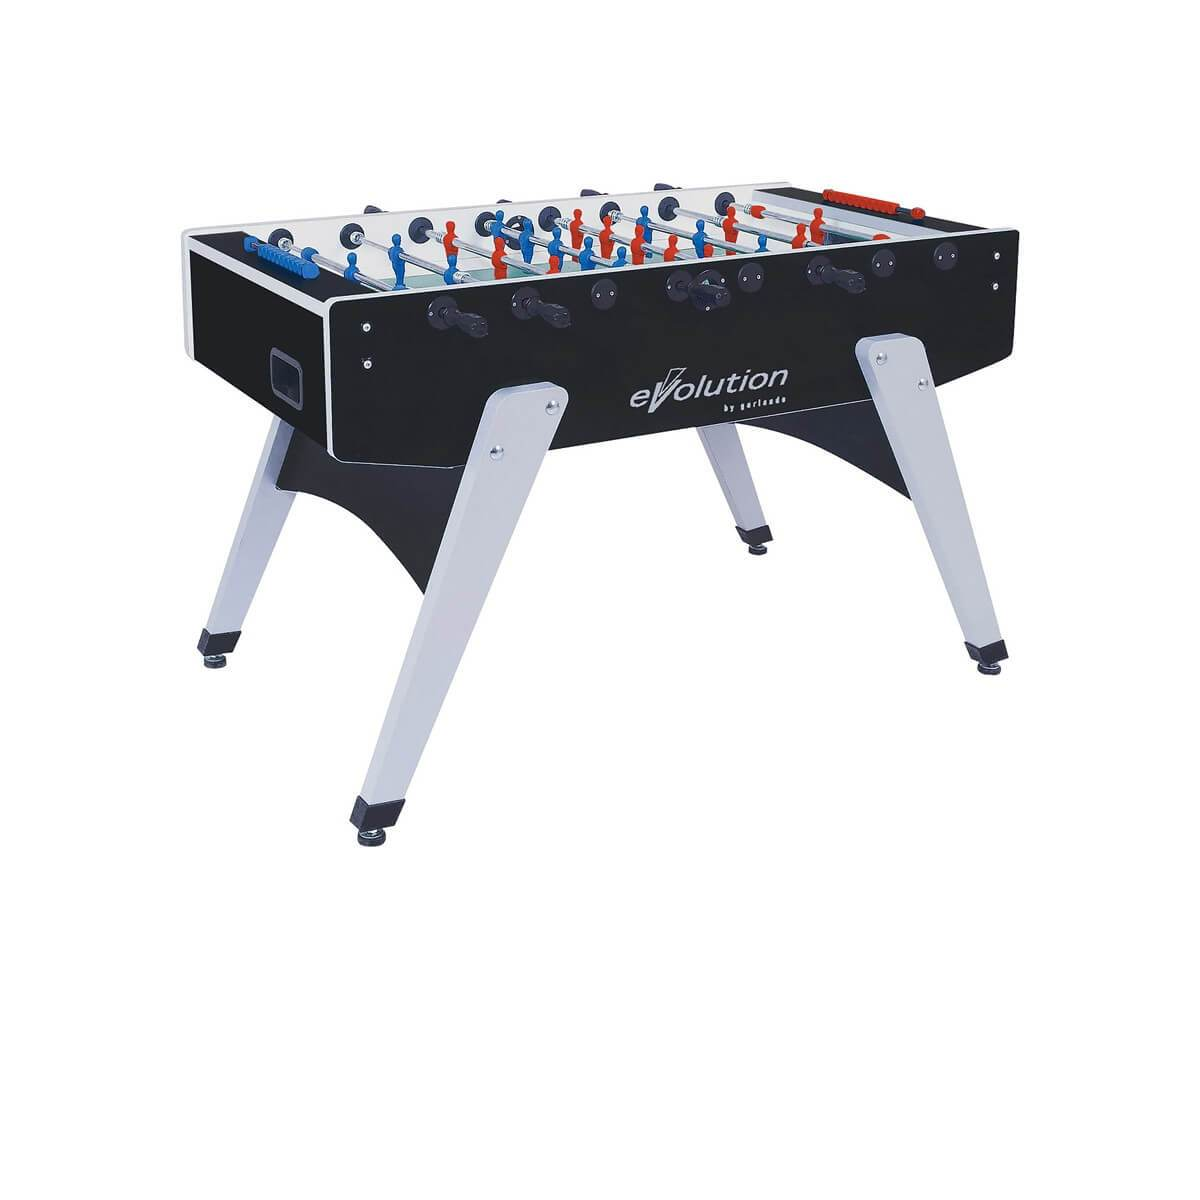 Garlando G-2000 Evolution Foosball Table - Gaming Blaze